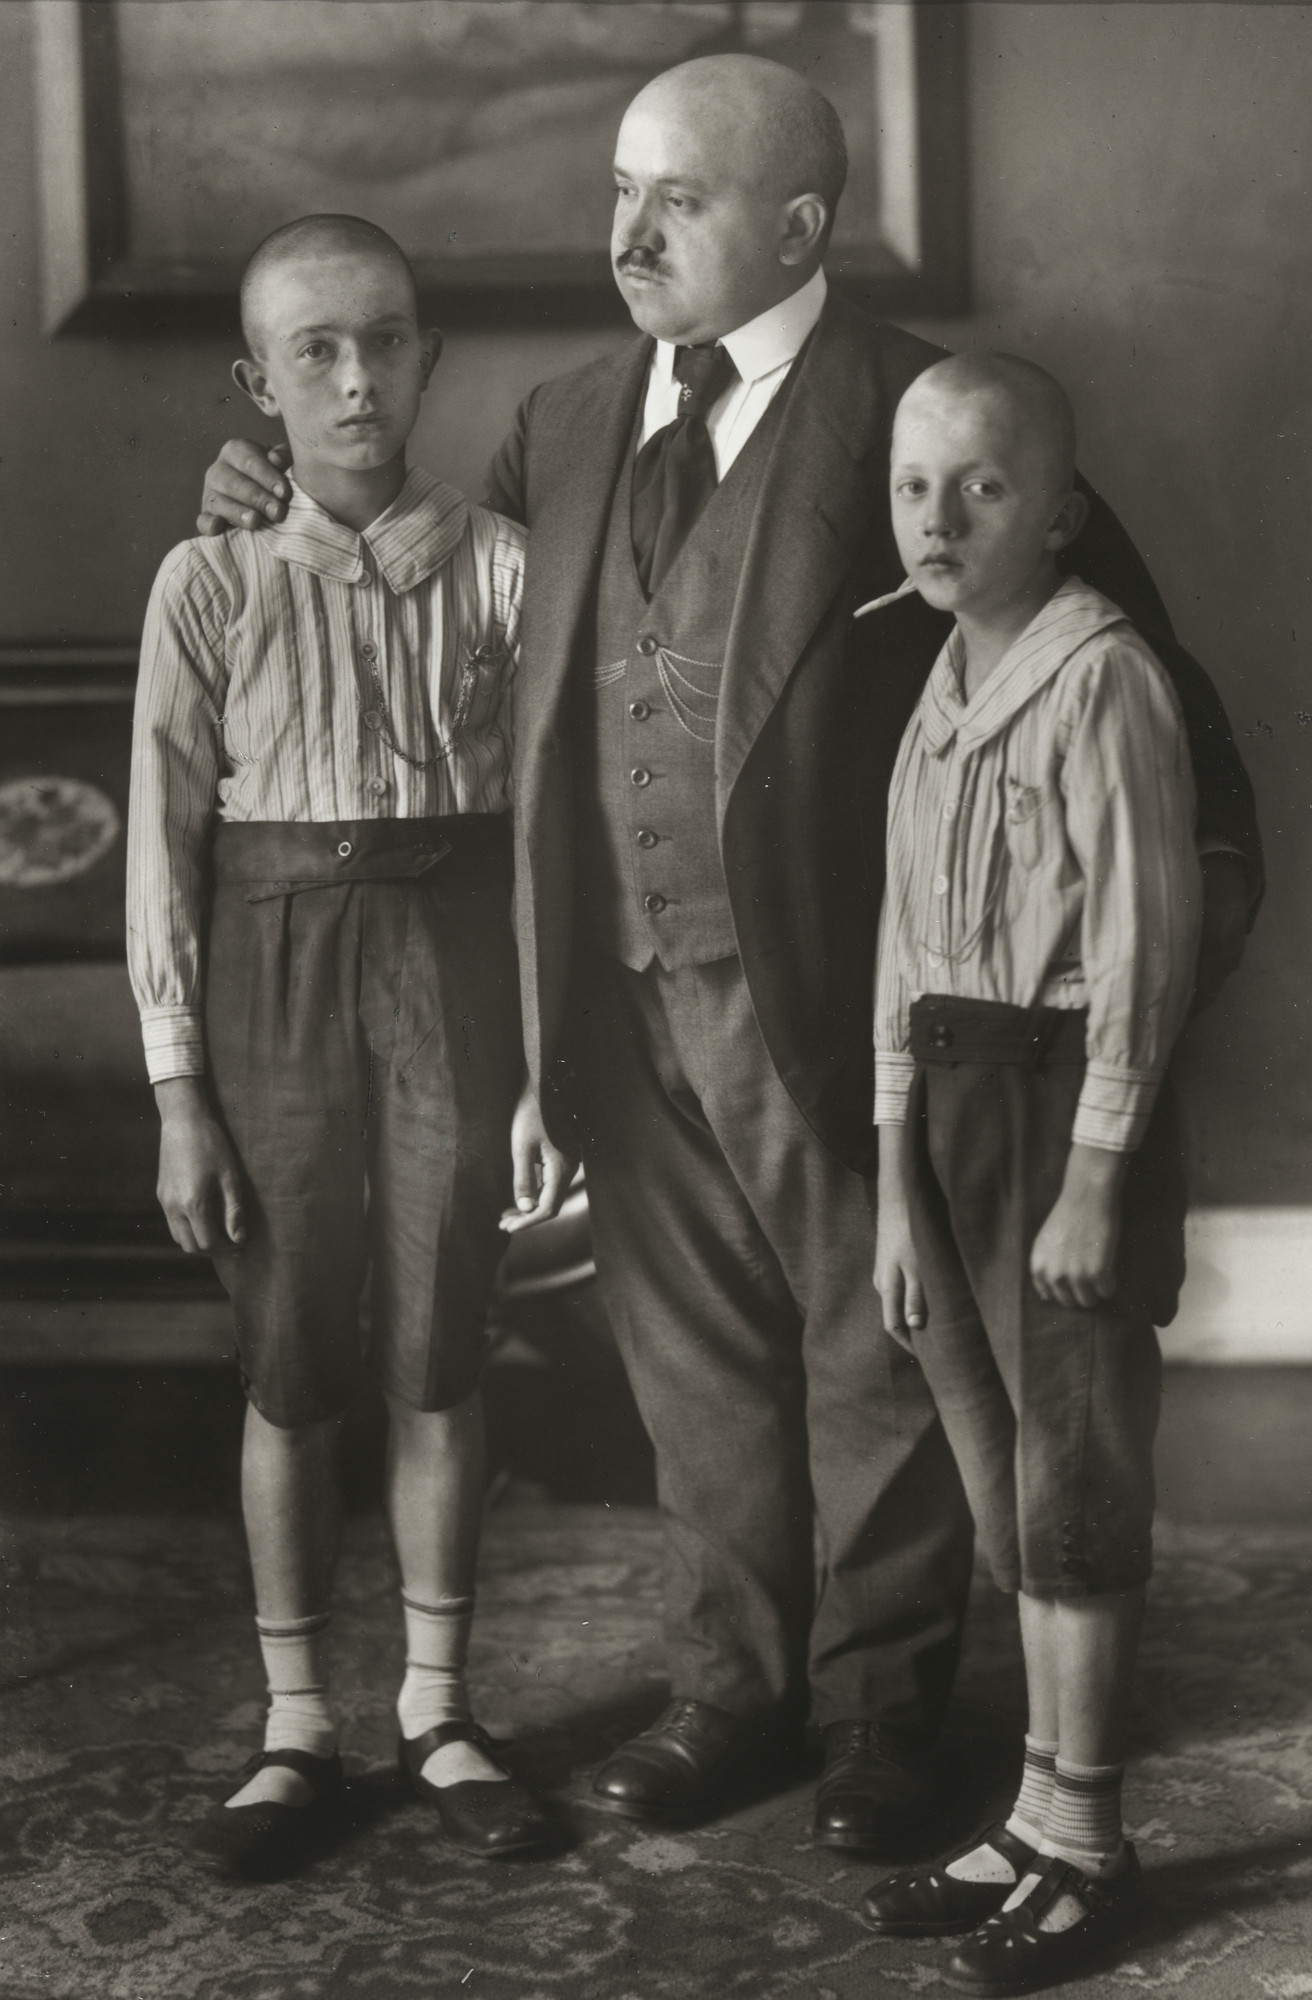 August Sander. Widower. 1914